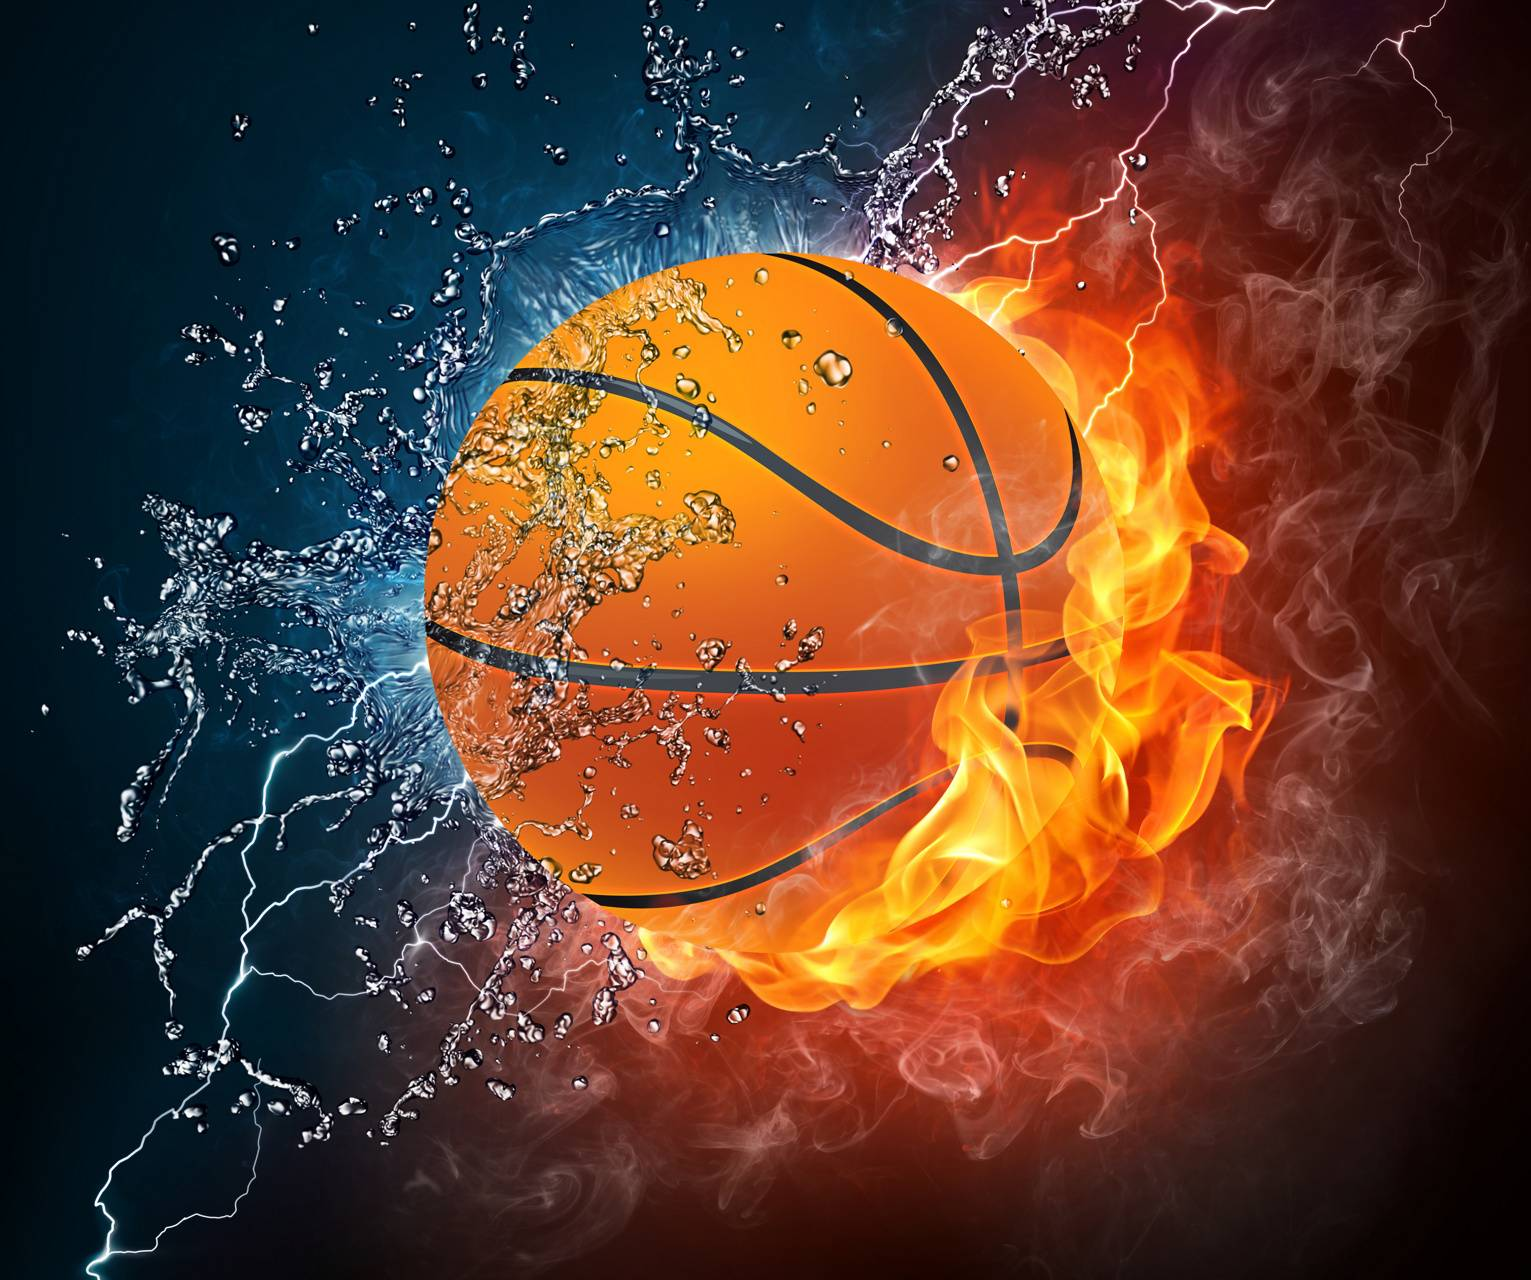 Cool Basketball Wallpapers: Basketball On Fire Wallpaper By Stork002